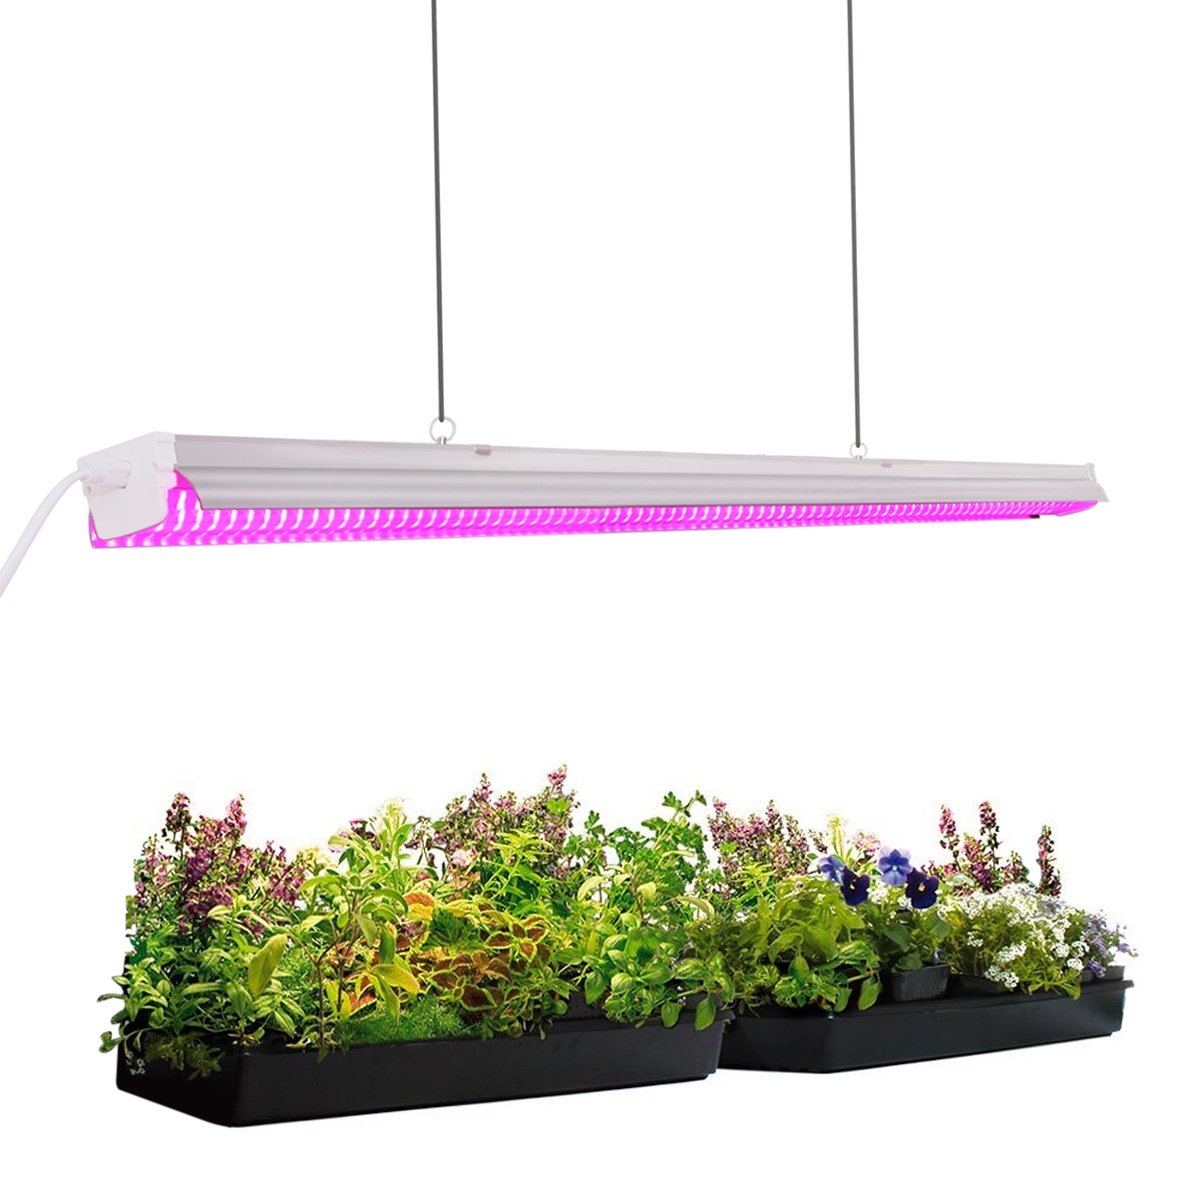 Byingo 4ft 64W Plant Grow Light - LED Integrated Lamp Fixture Plug and Play - Full Spectrum for Indoor Plants Flowers Growing by Byingo